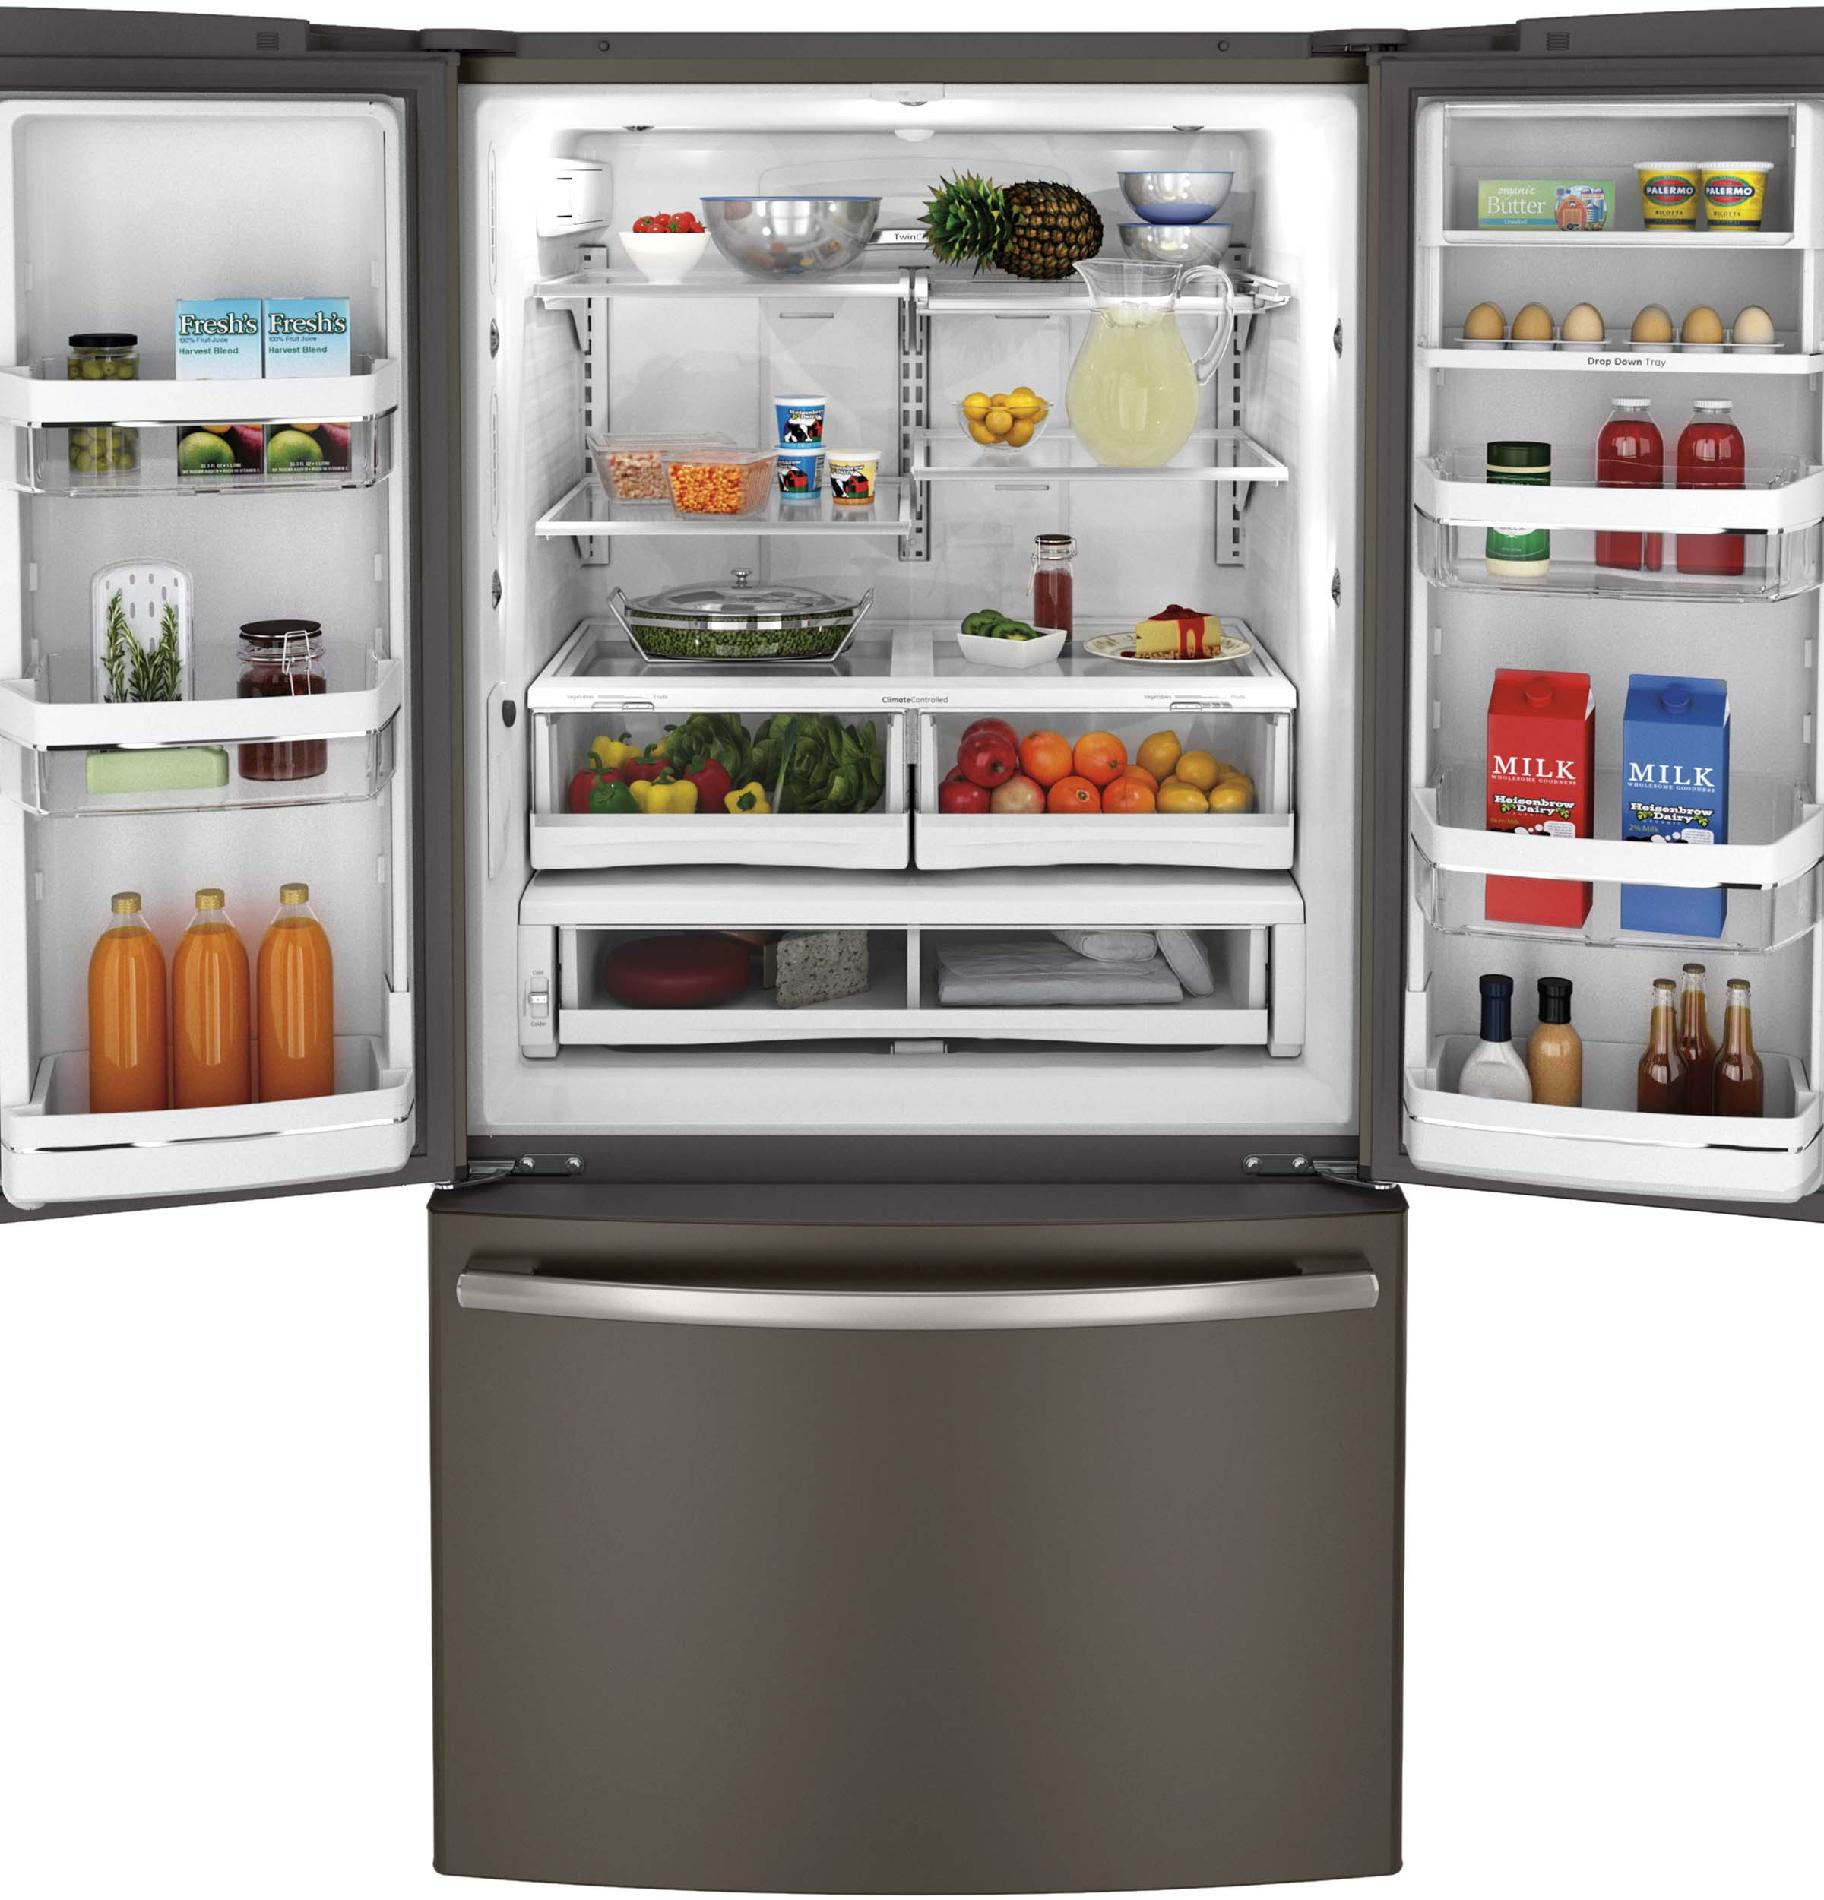 GE Profile 23.1 cu. ft. Counter-Depth French-Door Refrigerator - Slate